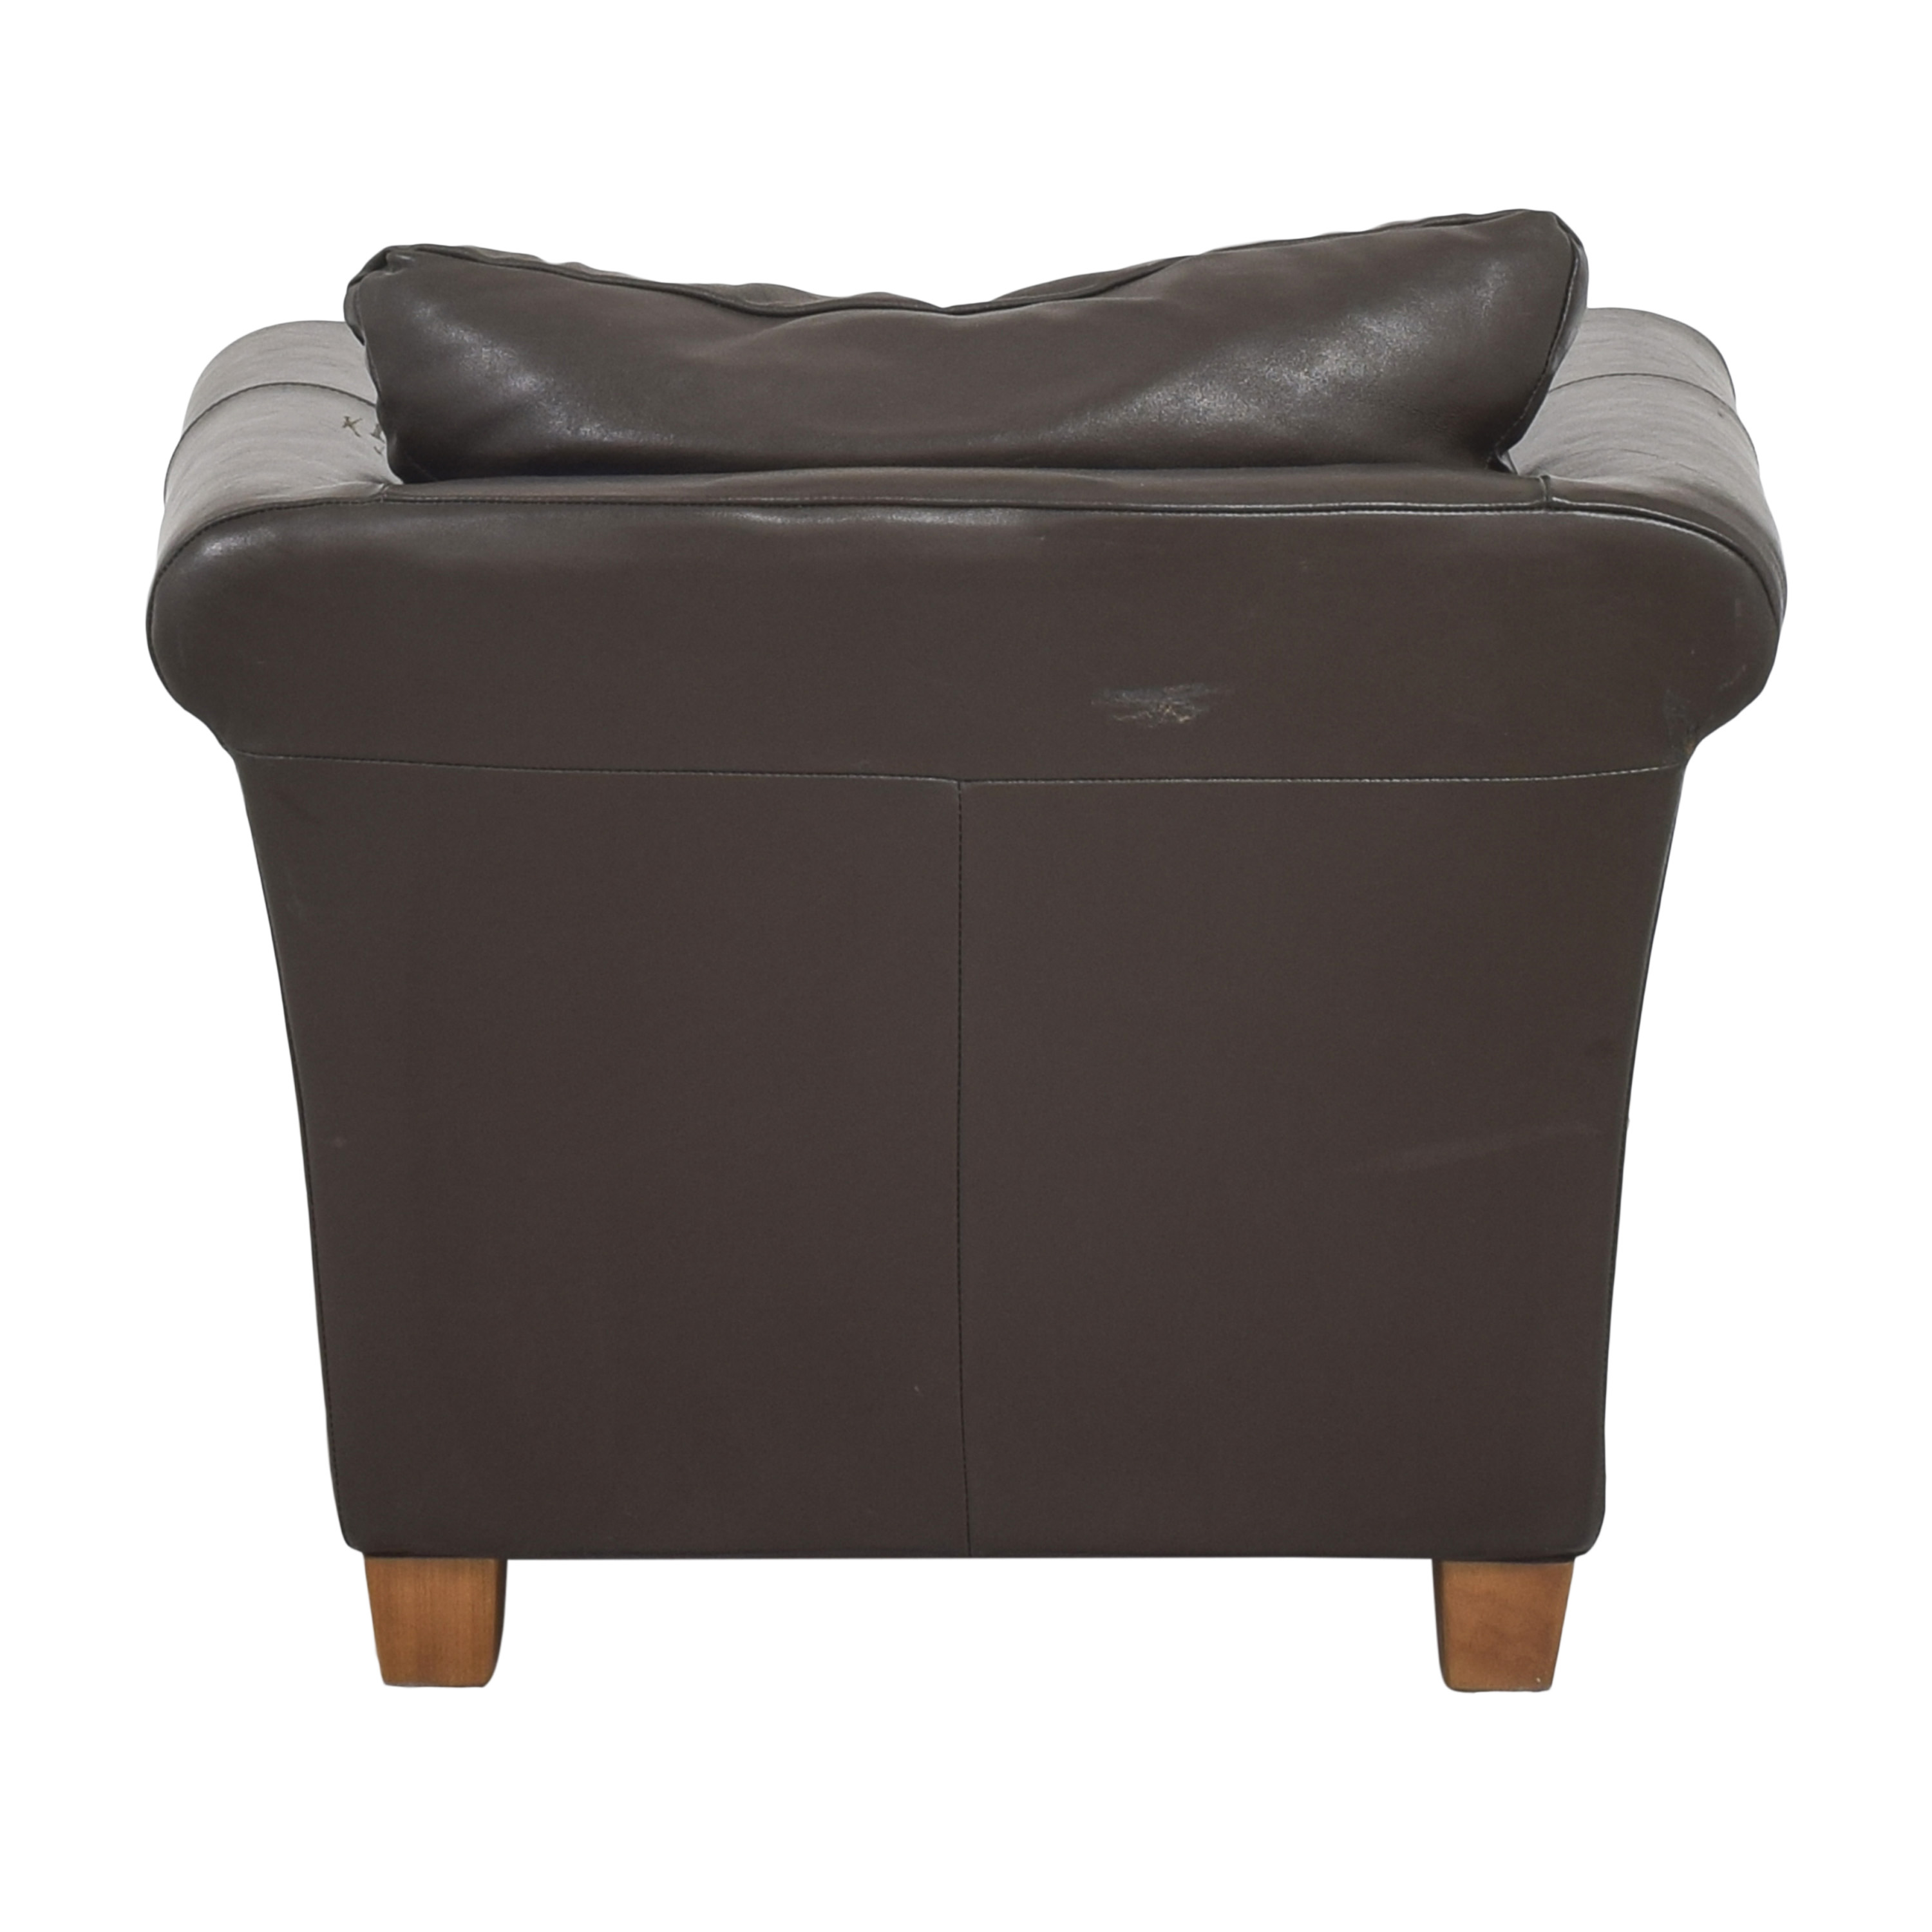 shop Macy's Lounge Chair with Ottoman Macy's Chairs